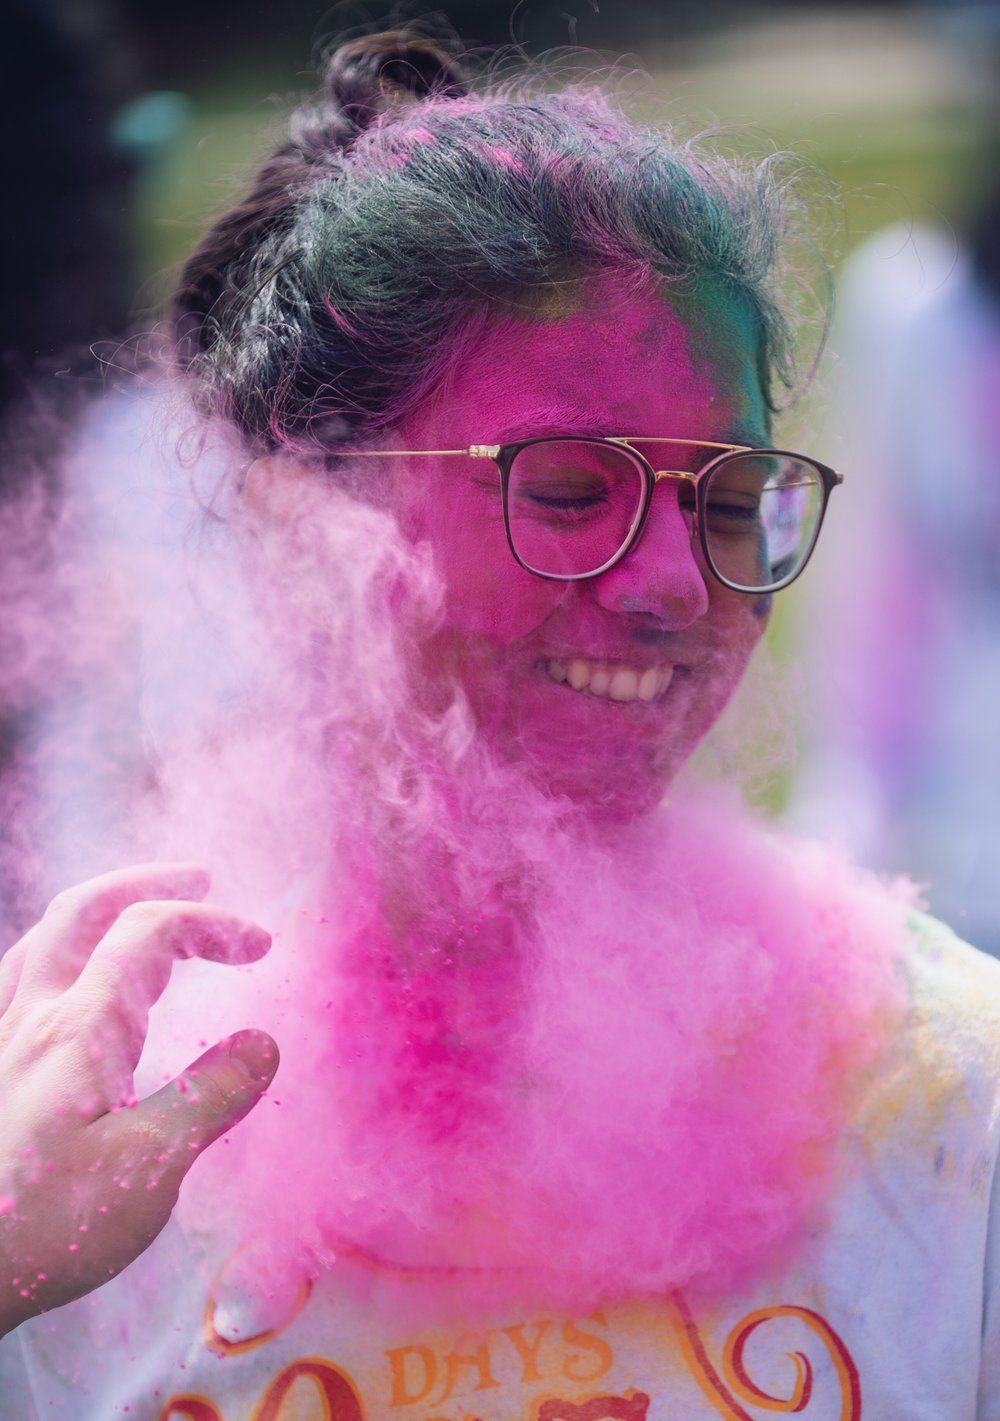 Krittika Shahani (freshman-computer science) gets powder thrown at her during the Hindu festival, Holi, hosted by the Indian Culture and Language Club and South Asian Student Association on Sunday, April 7, 2019 at the HUB-Robeson Center lawn. | Photo by: Noah Riffe